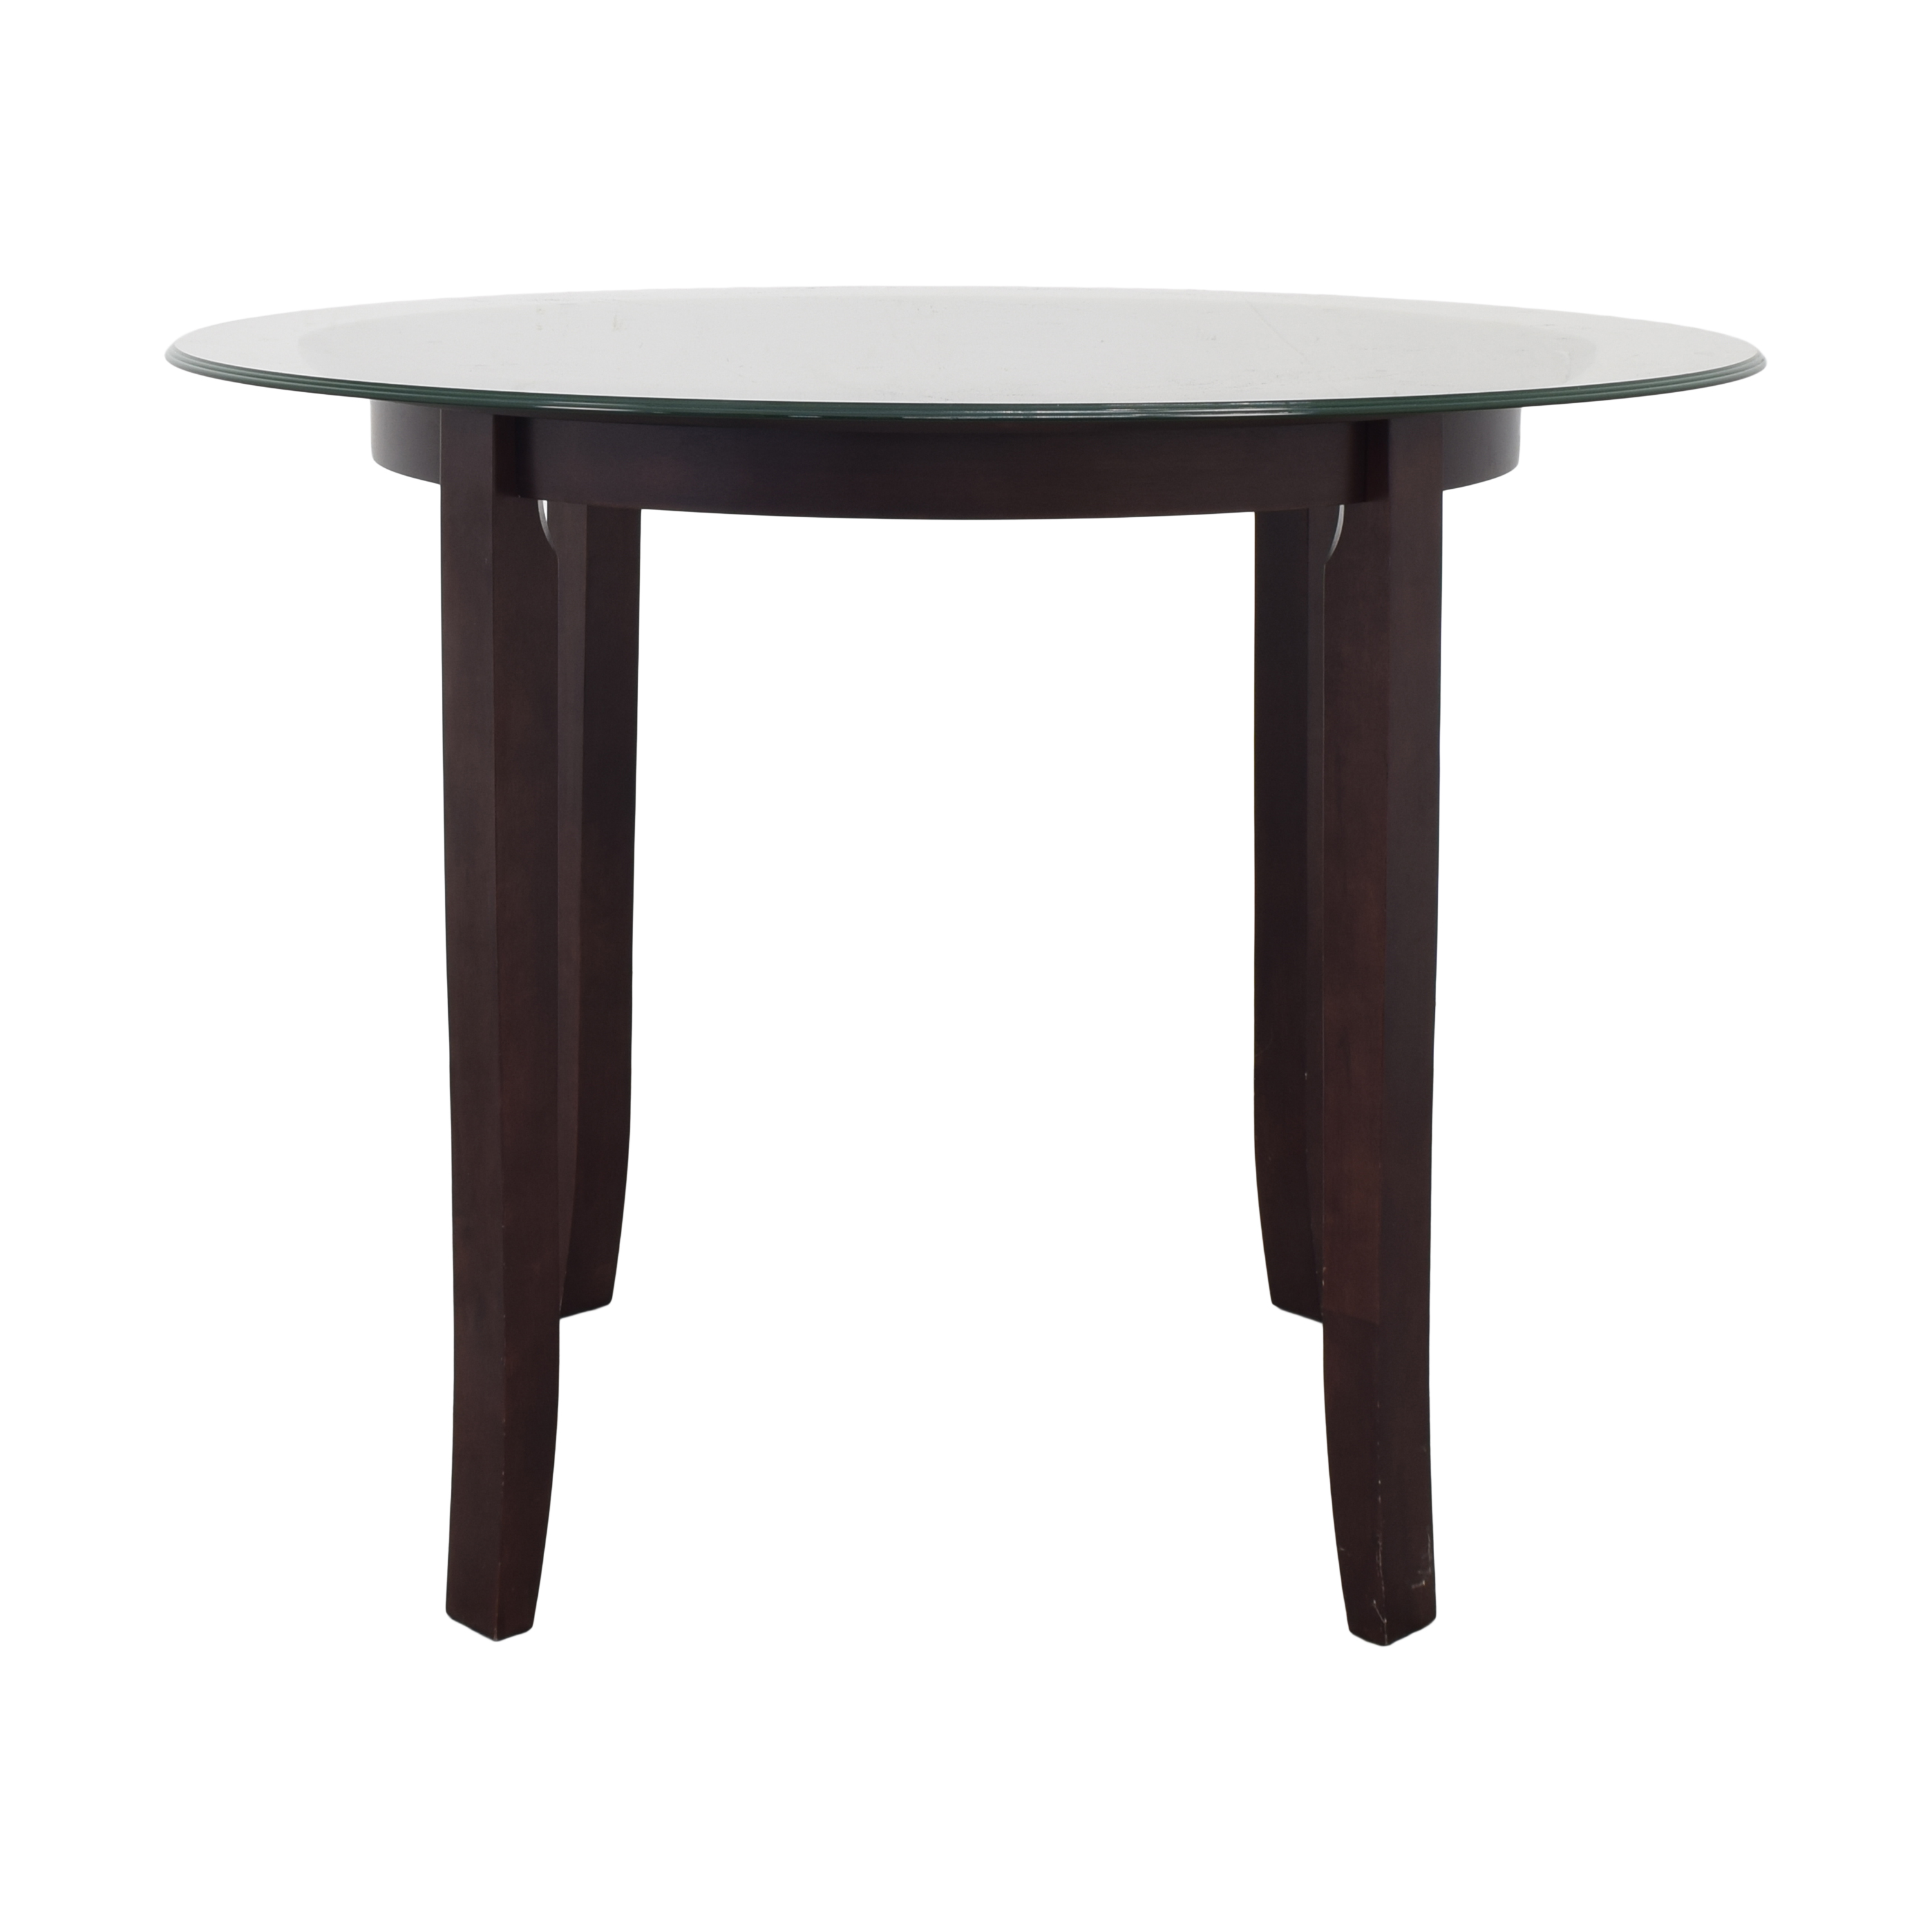 Rooms To Go Rooms To Go Keefer High Top Dining Room Table ma